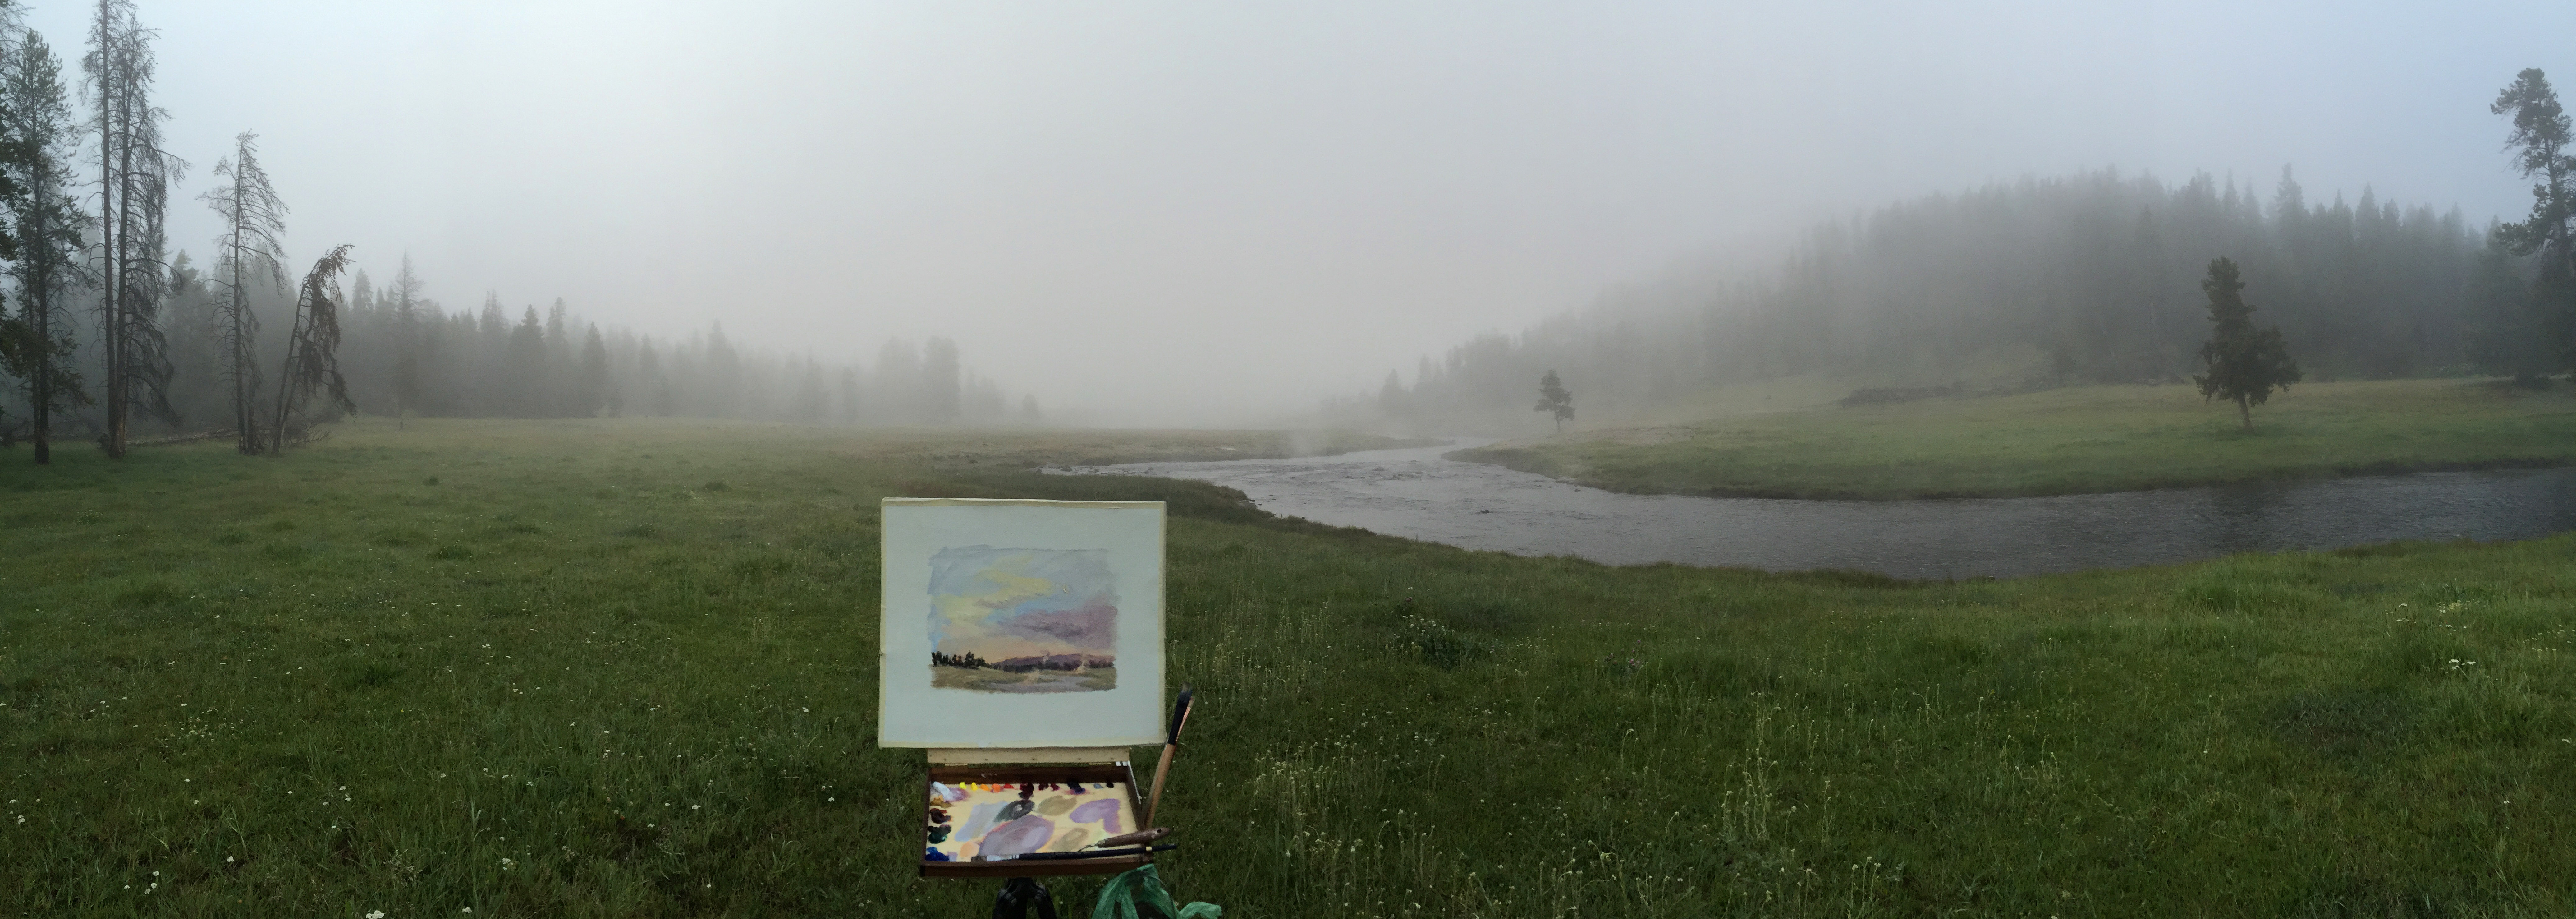 Painting along the Nez Perce